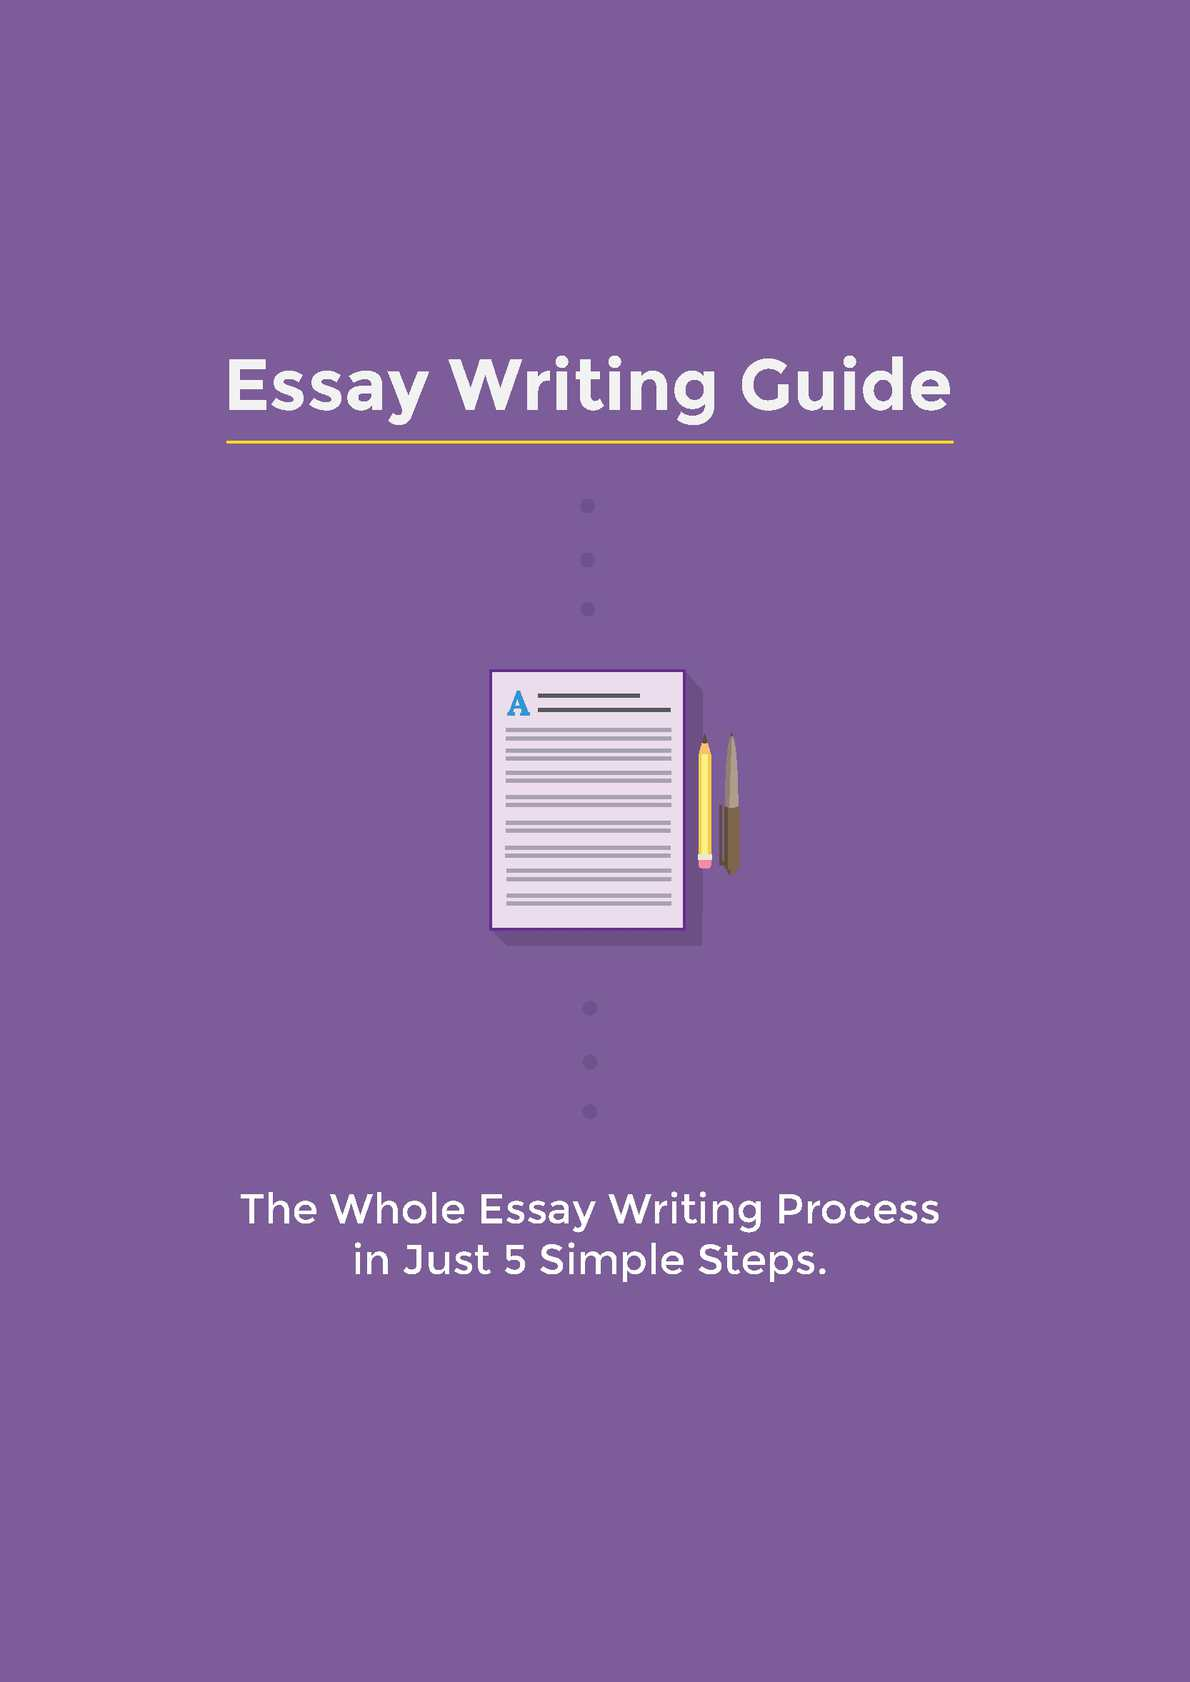 essay writing simple steps Write my essay for me is the exact thing we do in here here at essay4today take 4 simple steps to receive your essay.